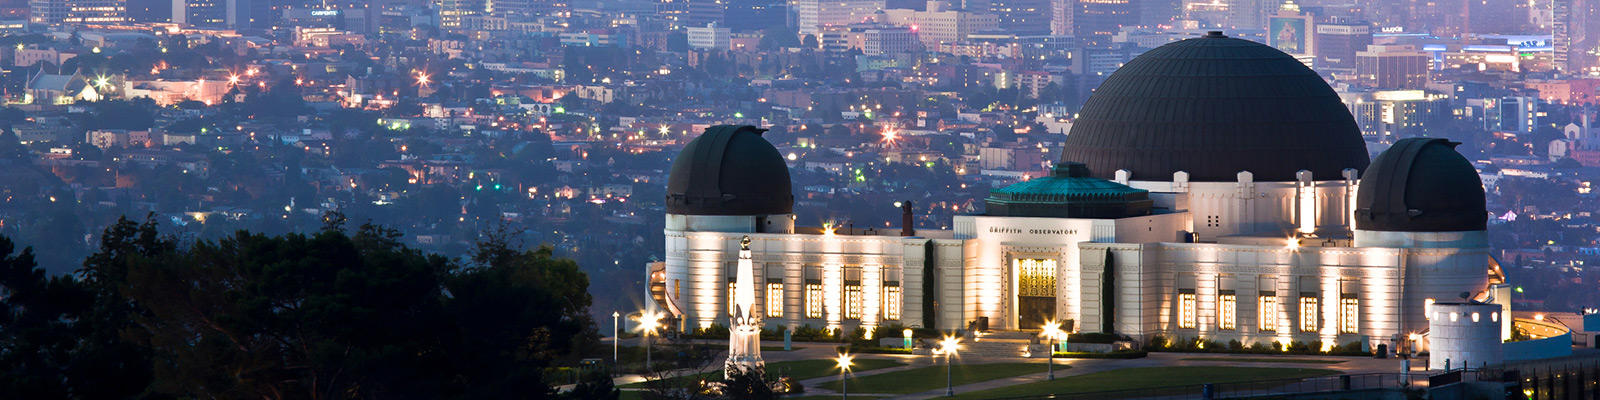 griffith observatory in LA against the skyline at sunset